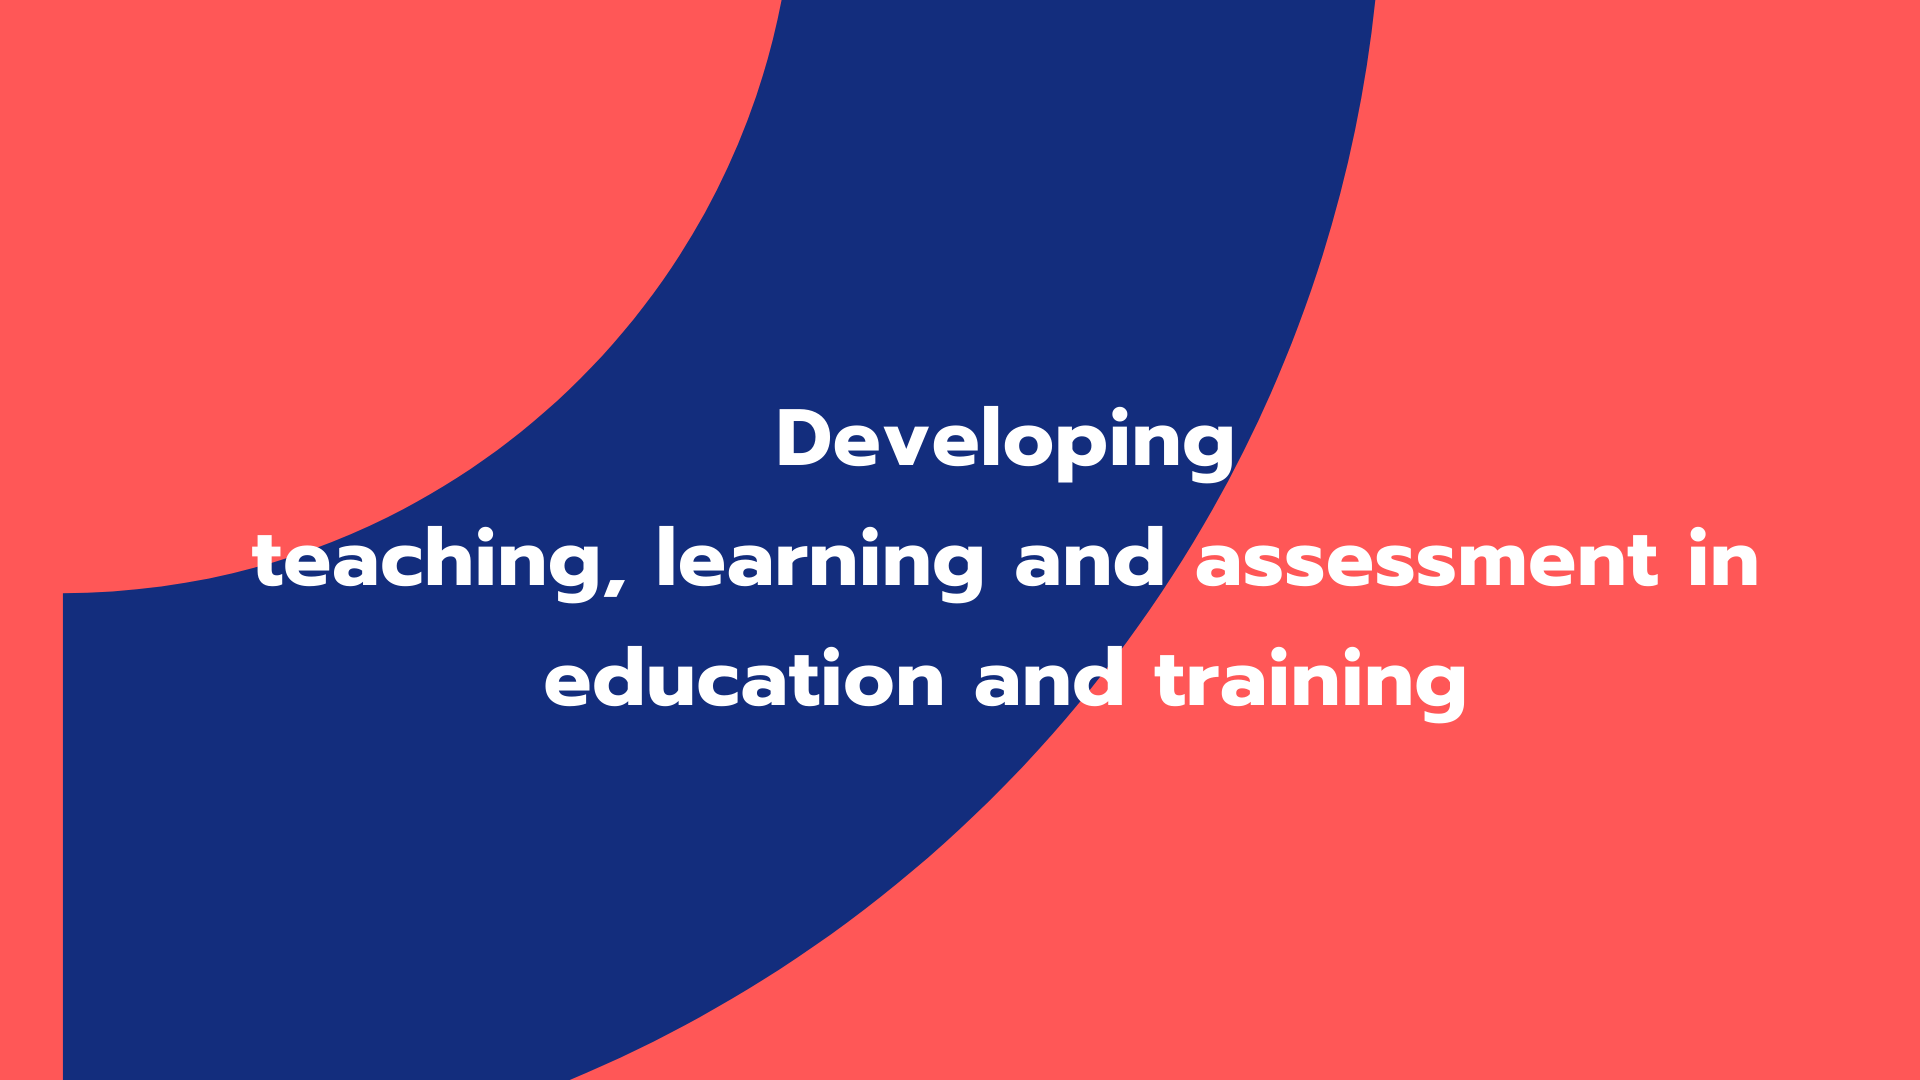 Developing teaching, learning and assessment in education and training